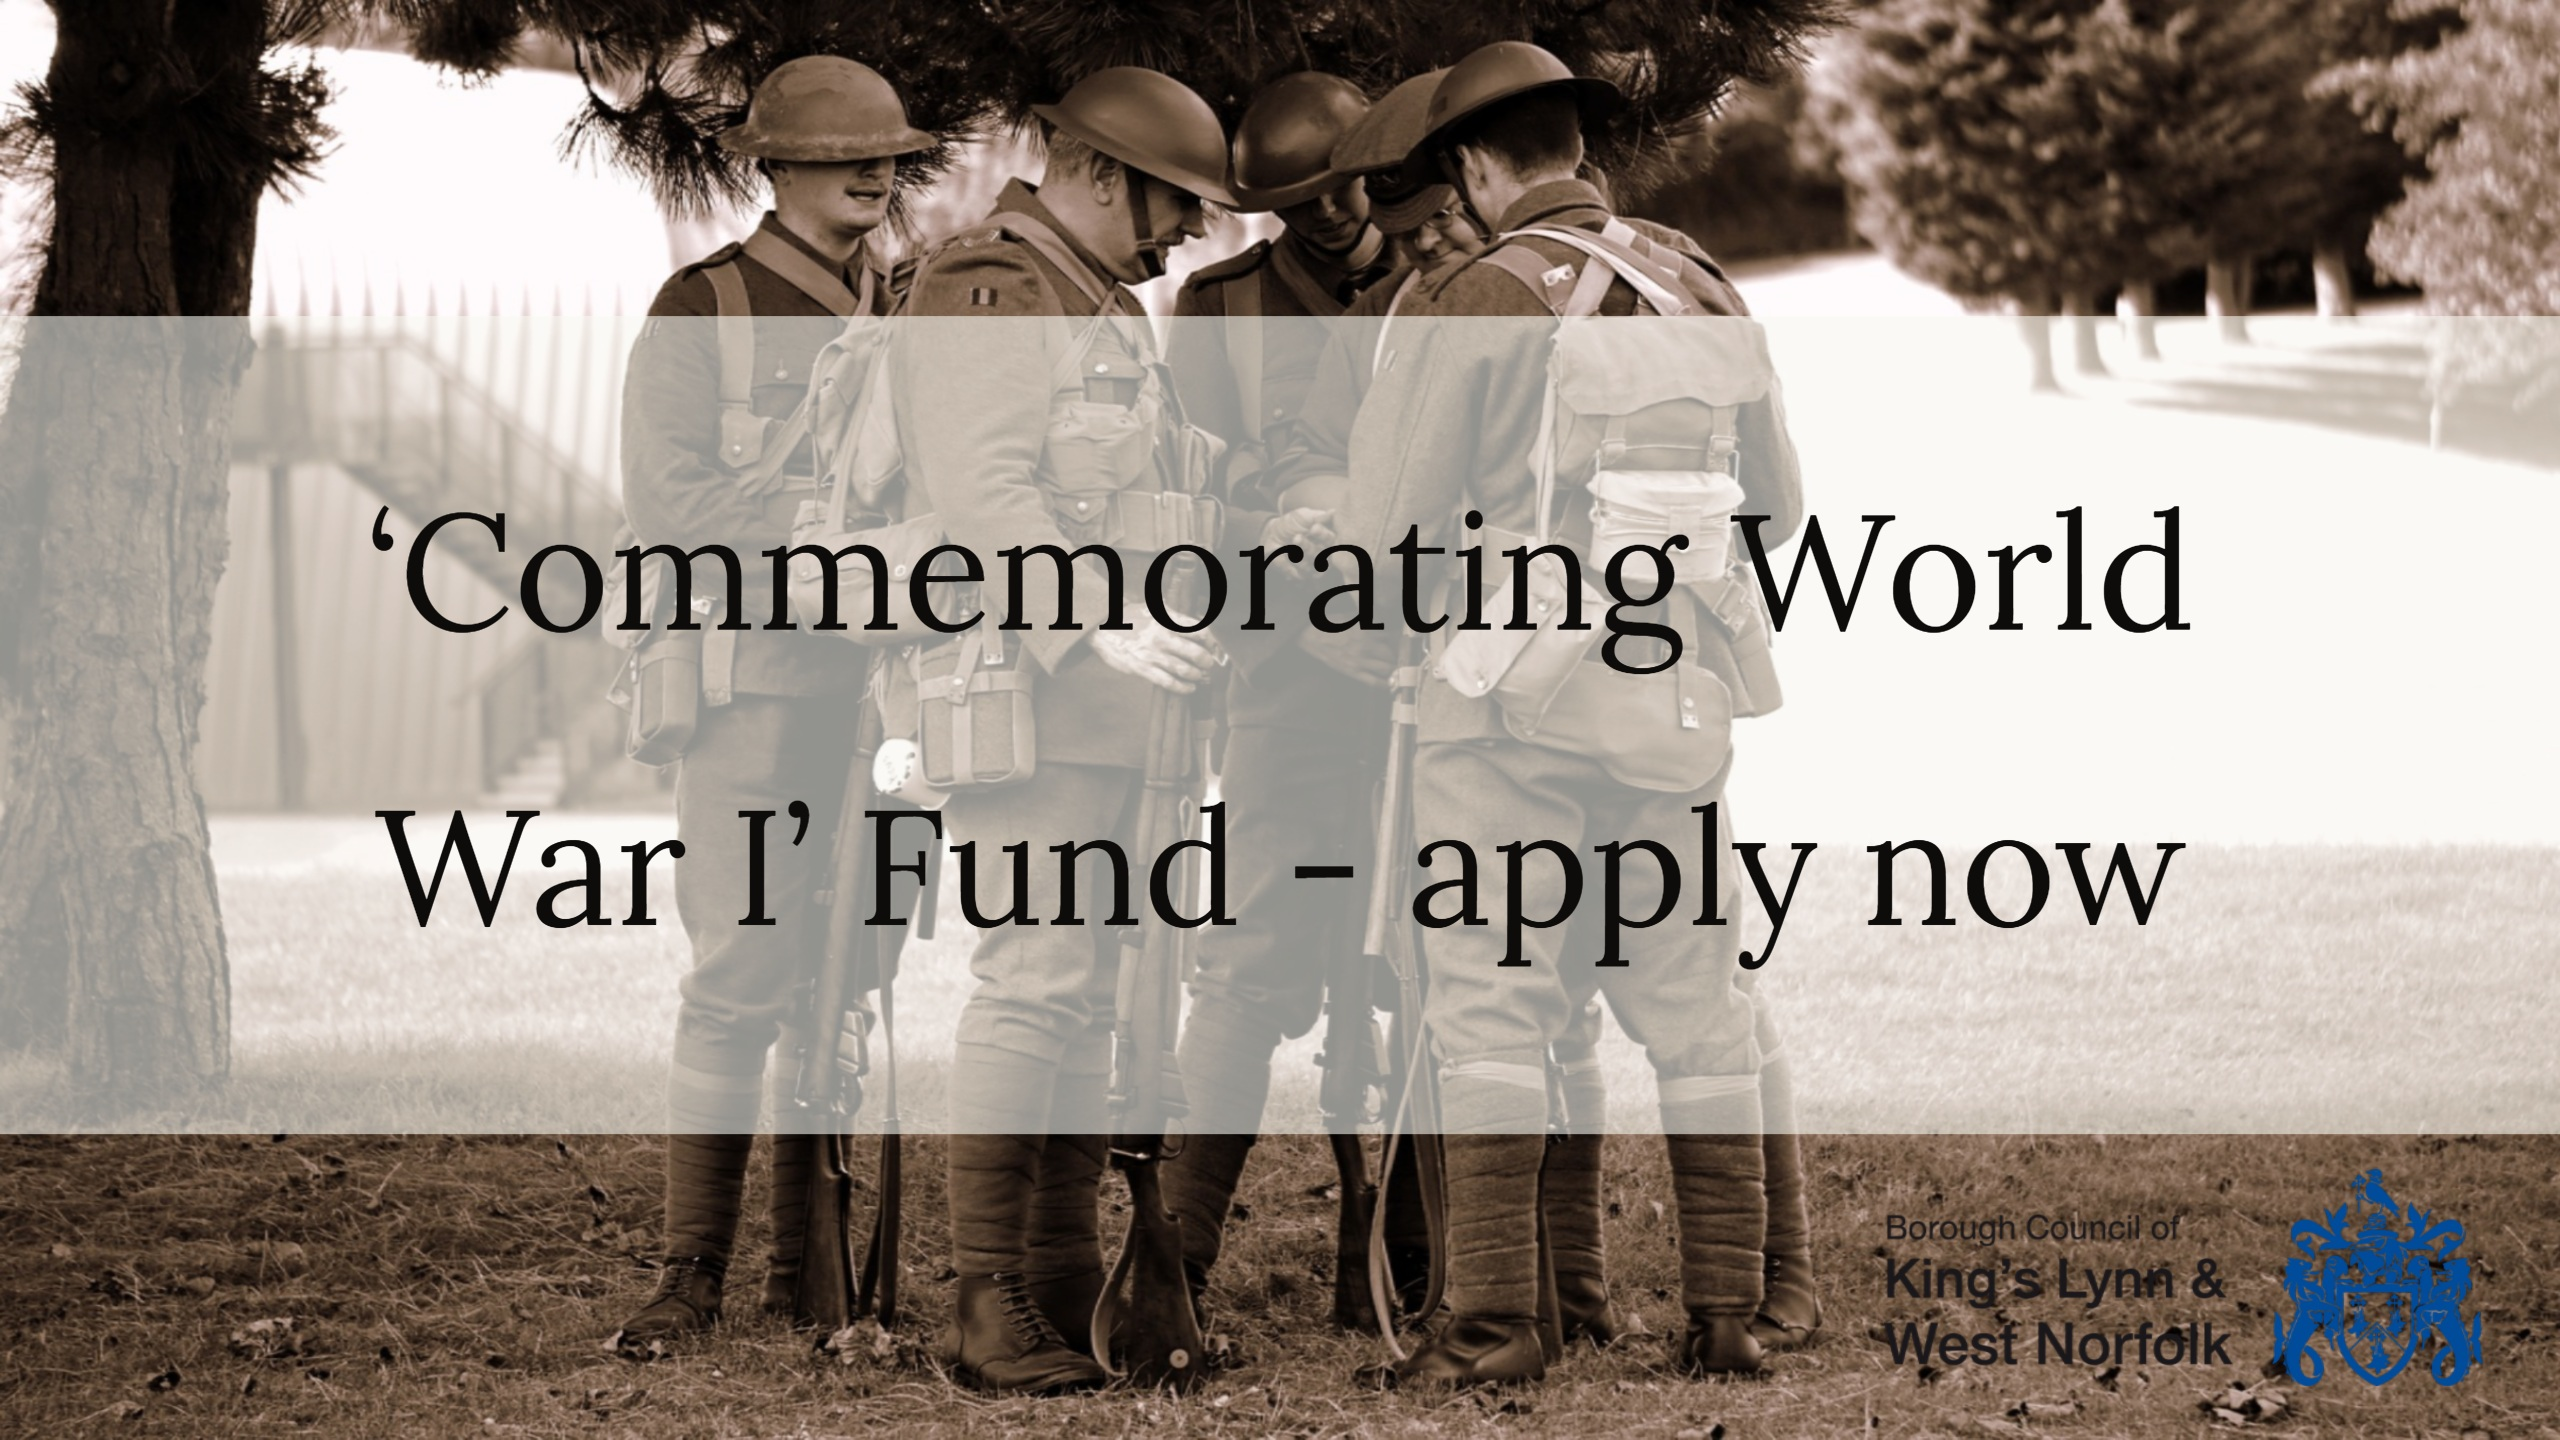 'Commemorating World War I' Fund - apply now